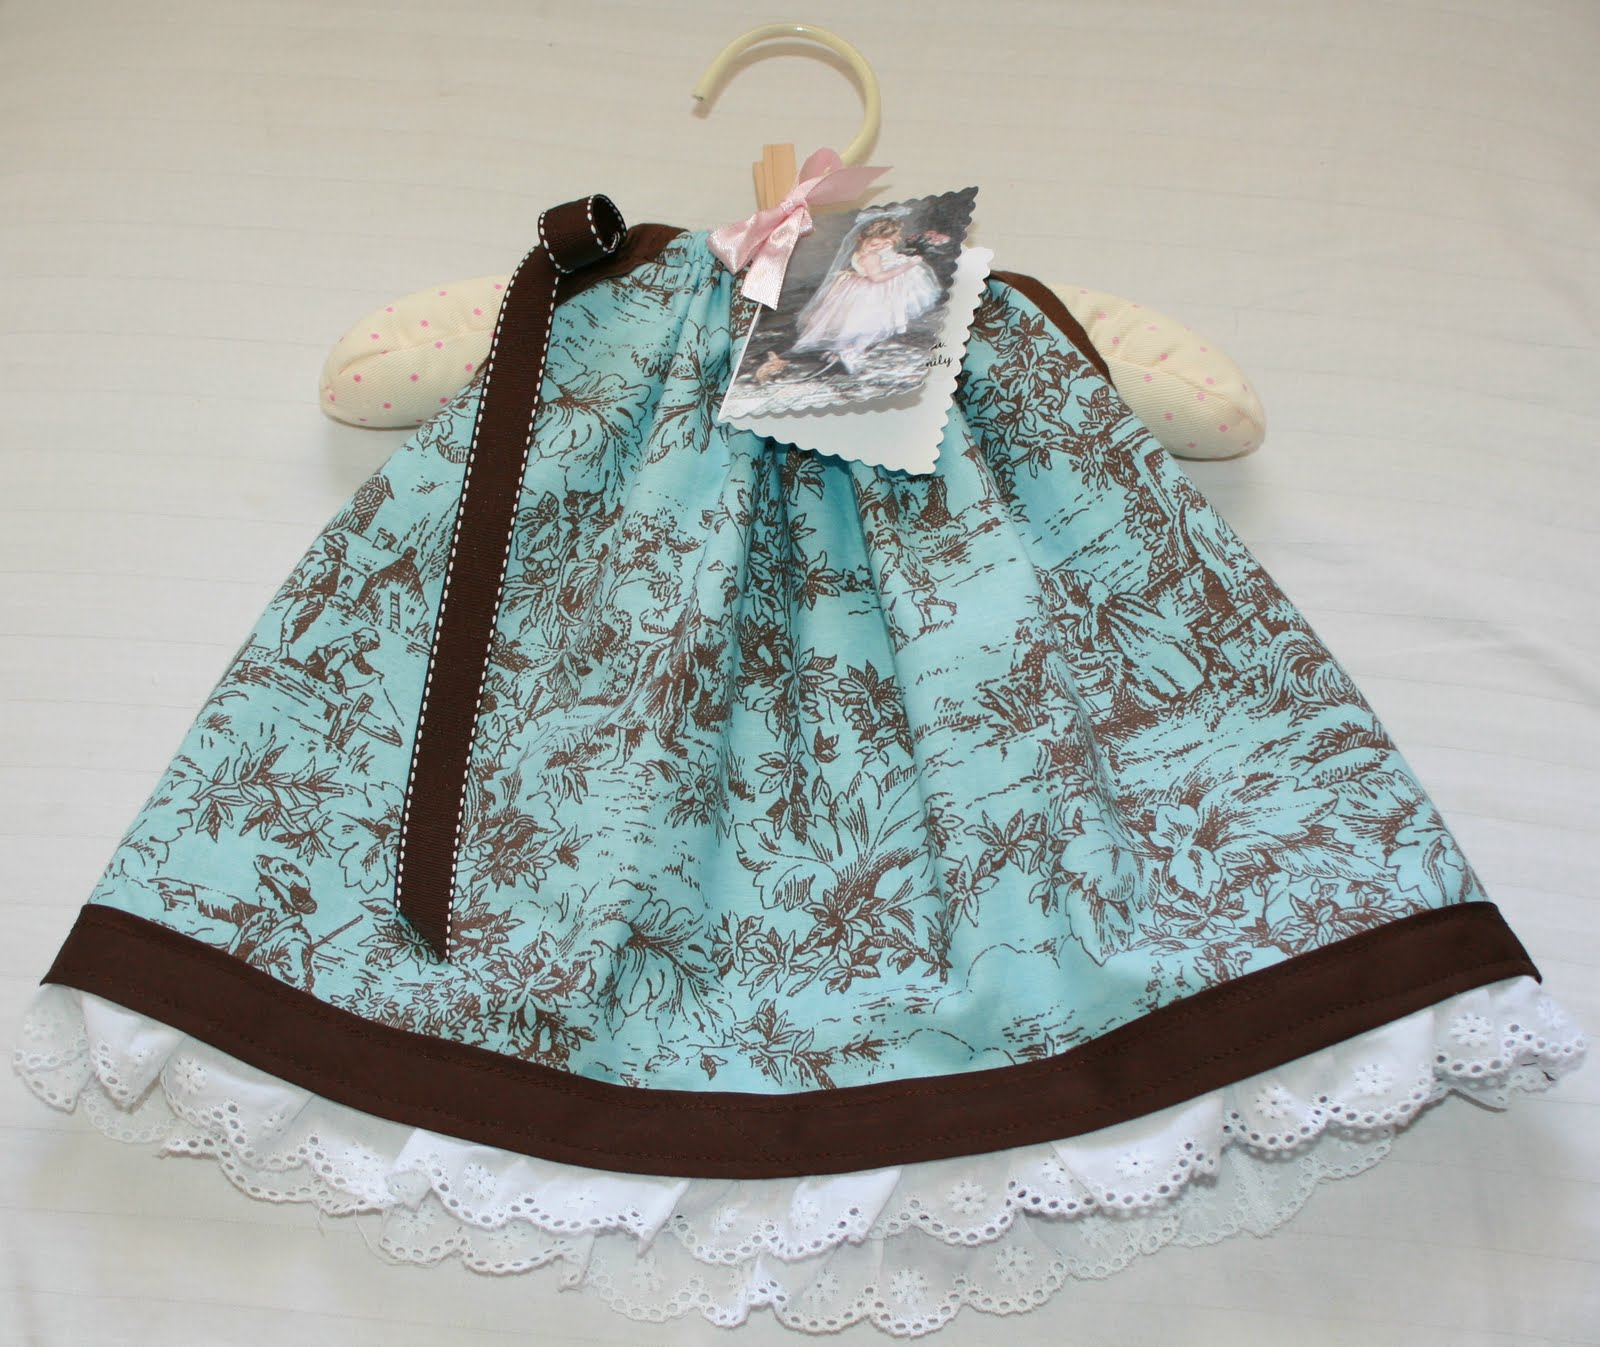 Baby Pillowcase Style Dress with Diaper Cover Tutorial DIY & Sweetie Pie: Baby Pillowcase Style Dress with Diaper Cover ... pillowsntoast.com